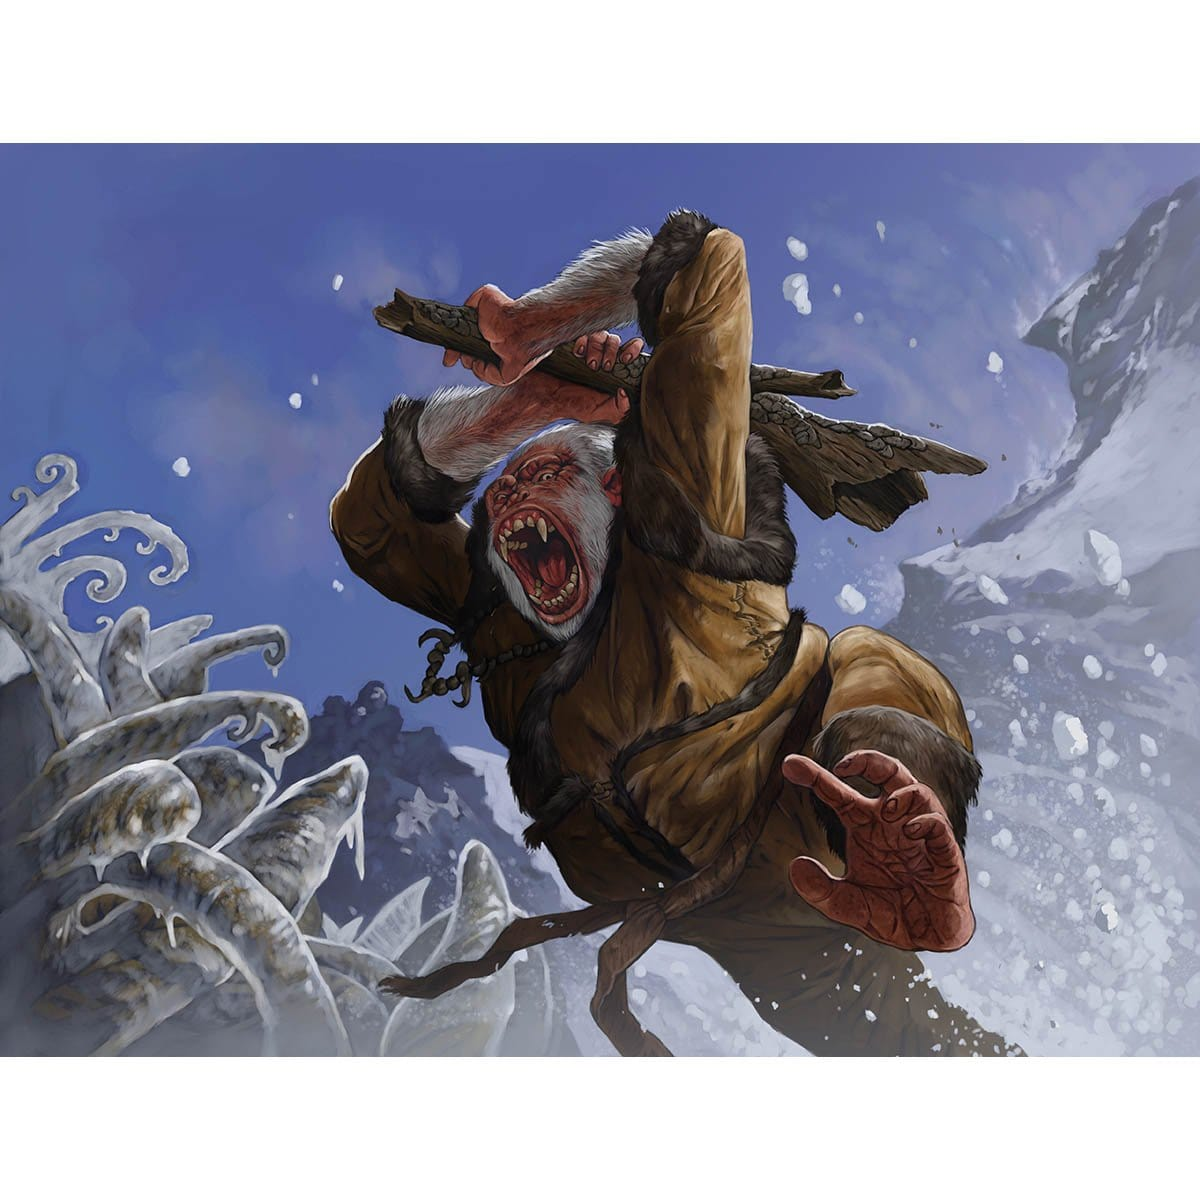 Simian Brawler Print - Print - Original Magic Art - Accessories for Magic the Gathering and other card games